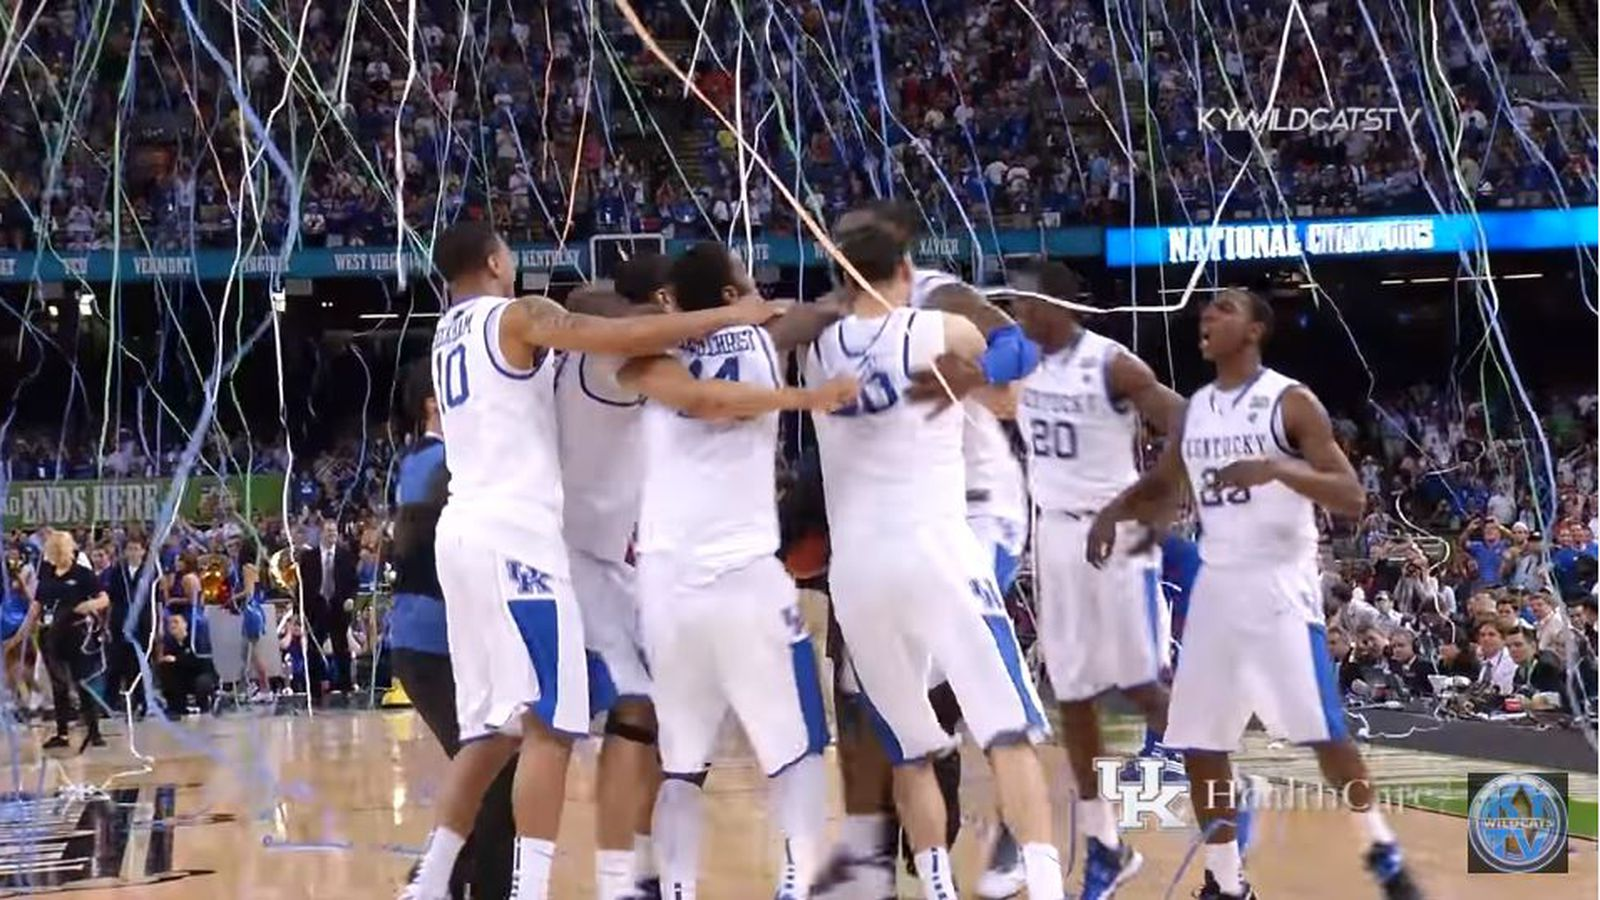 Uk Basketball 2016 17 Hype Video: UK Posts Big Blue Nation Hype Video And It's Awesome